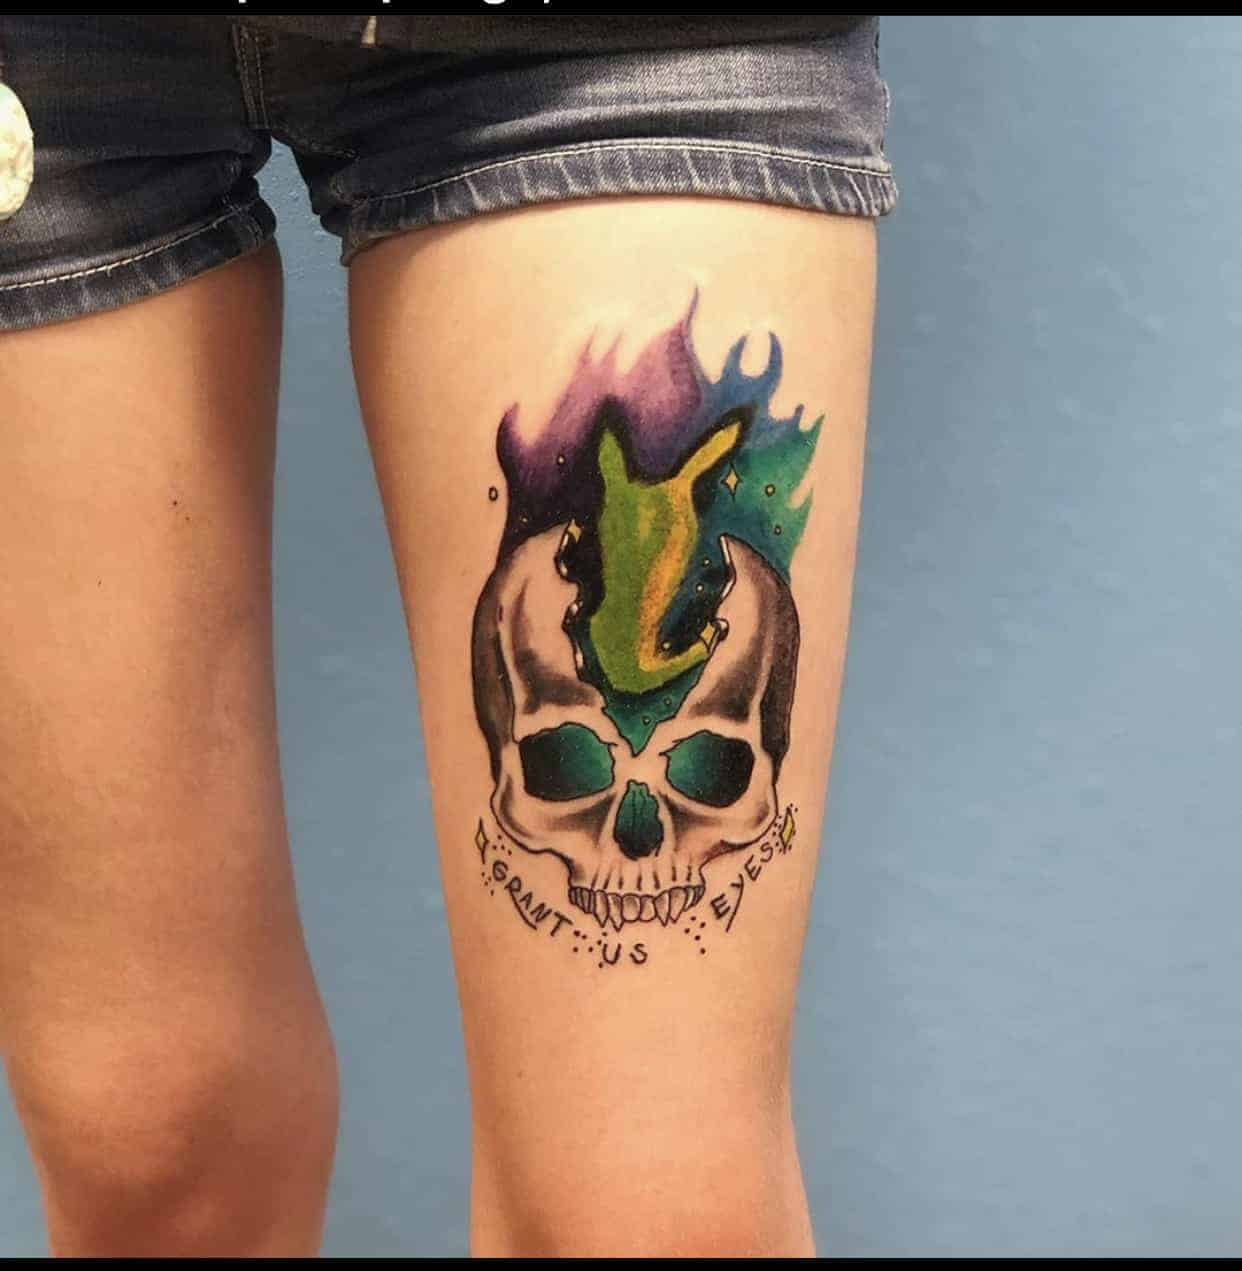 color flaming skull tattoo on thigh